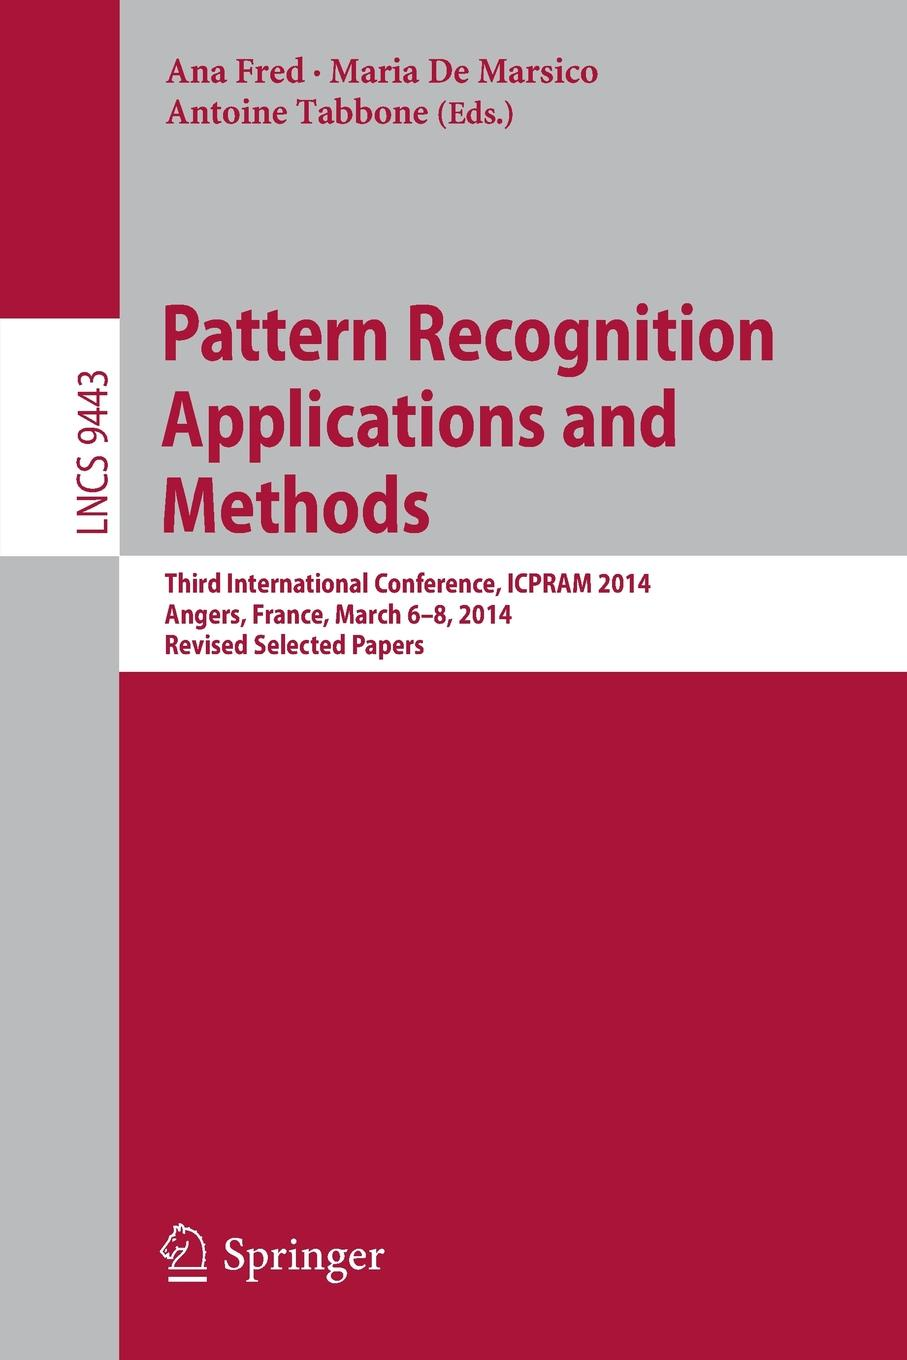 Pattern Recognition Applications and Methods. Third International Conference, ICPRAM 2014, Angers, France, March 6-8, 2014, Revised Selected Papers sm caen angers sco